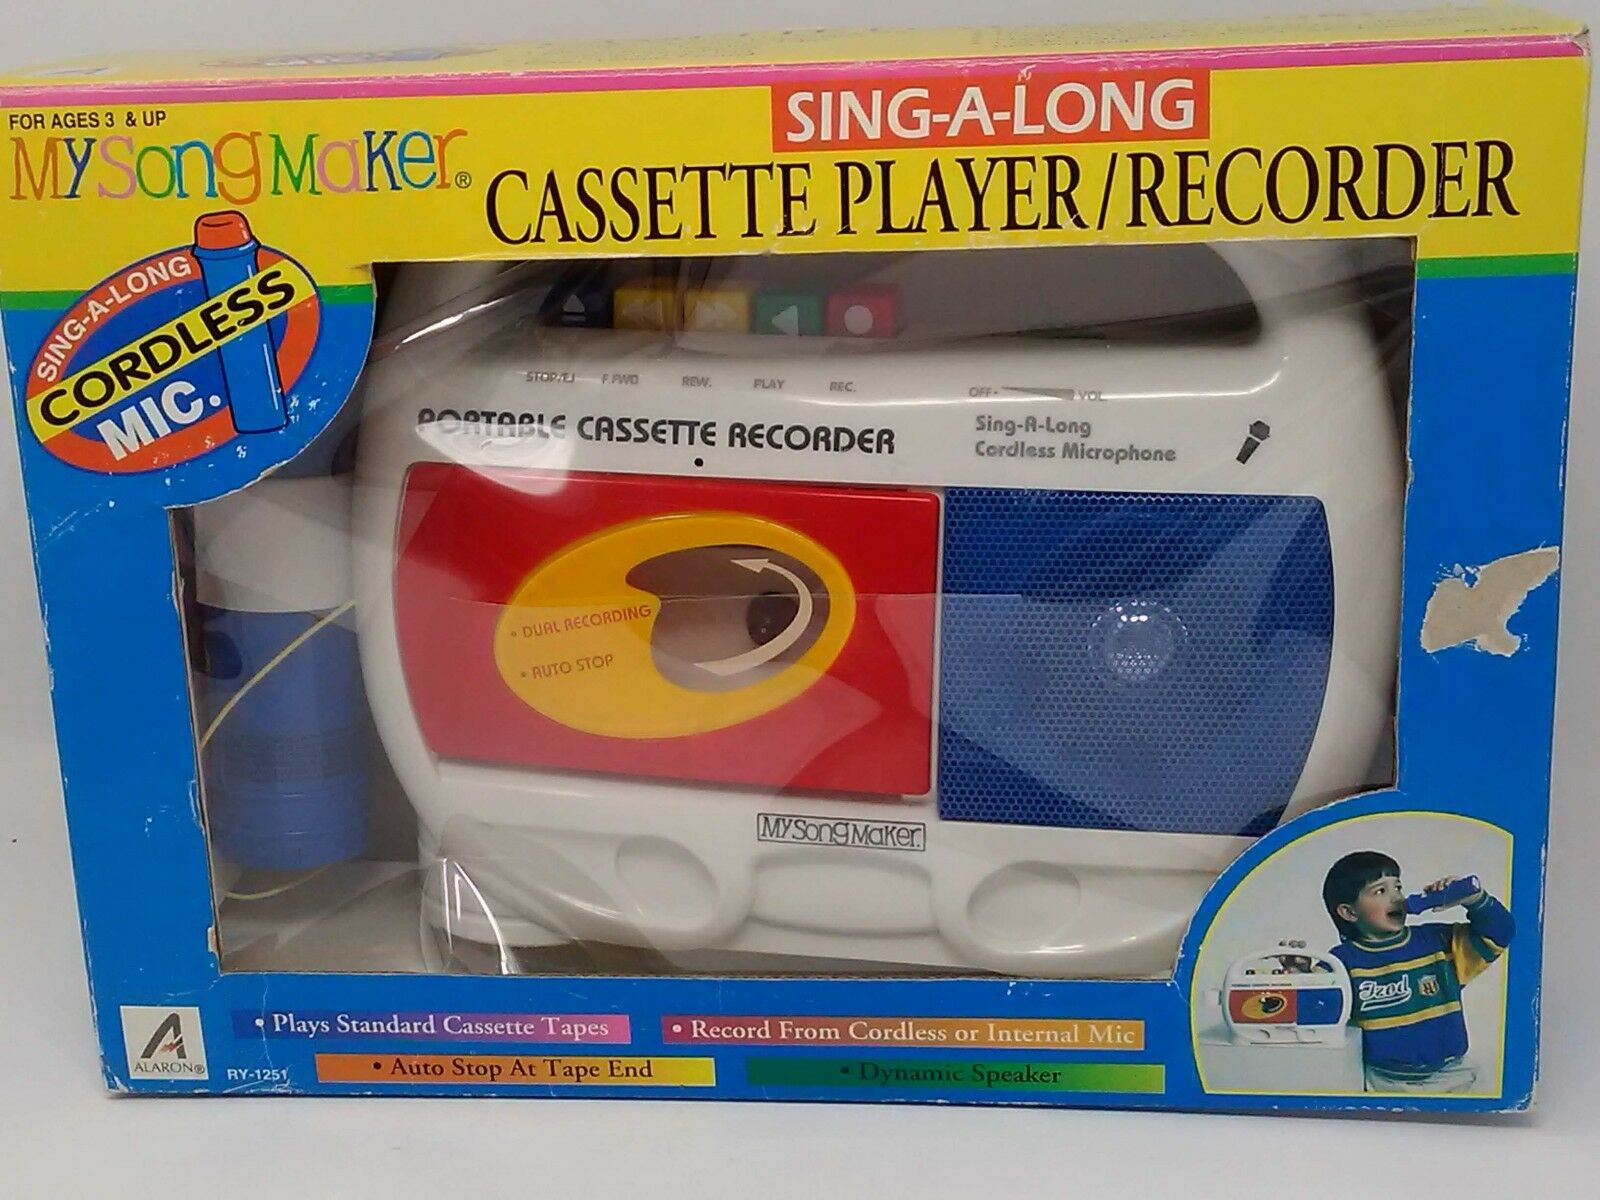 Cassette Player Recorder Sing-A-Long My Song Maker RY-1251 New in Box